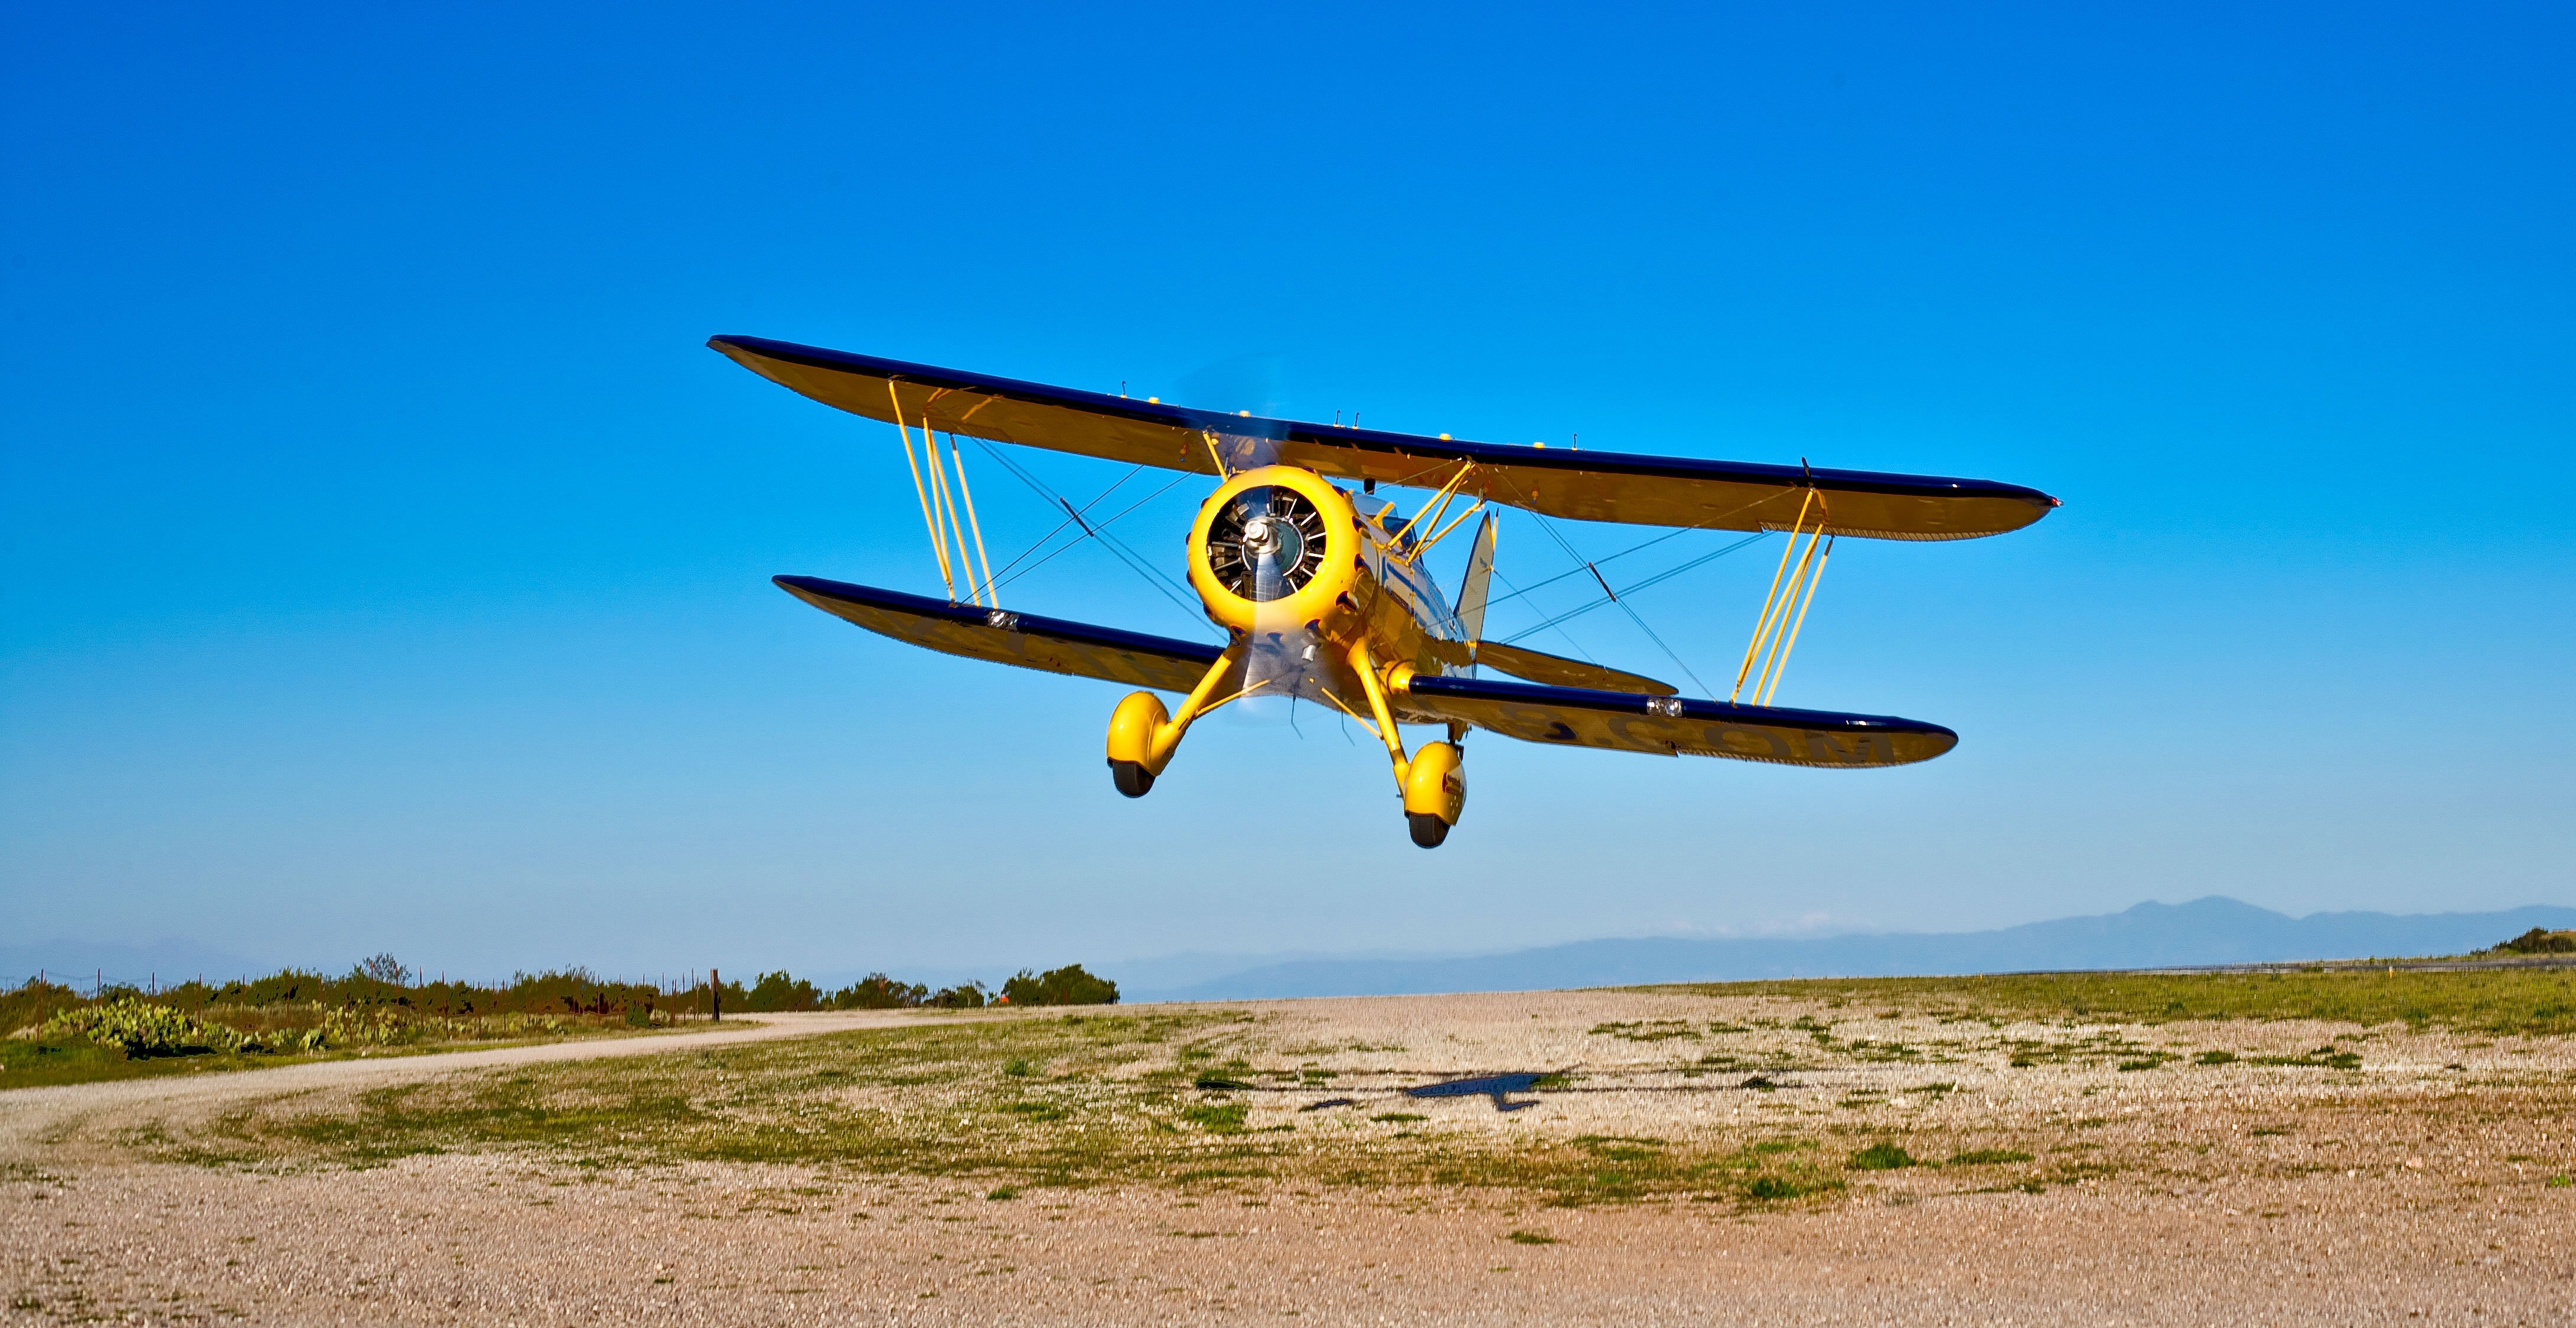 Biplane airplane plane aircraft wallpaper 4362x2249 for Airplane plan